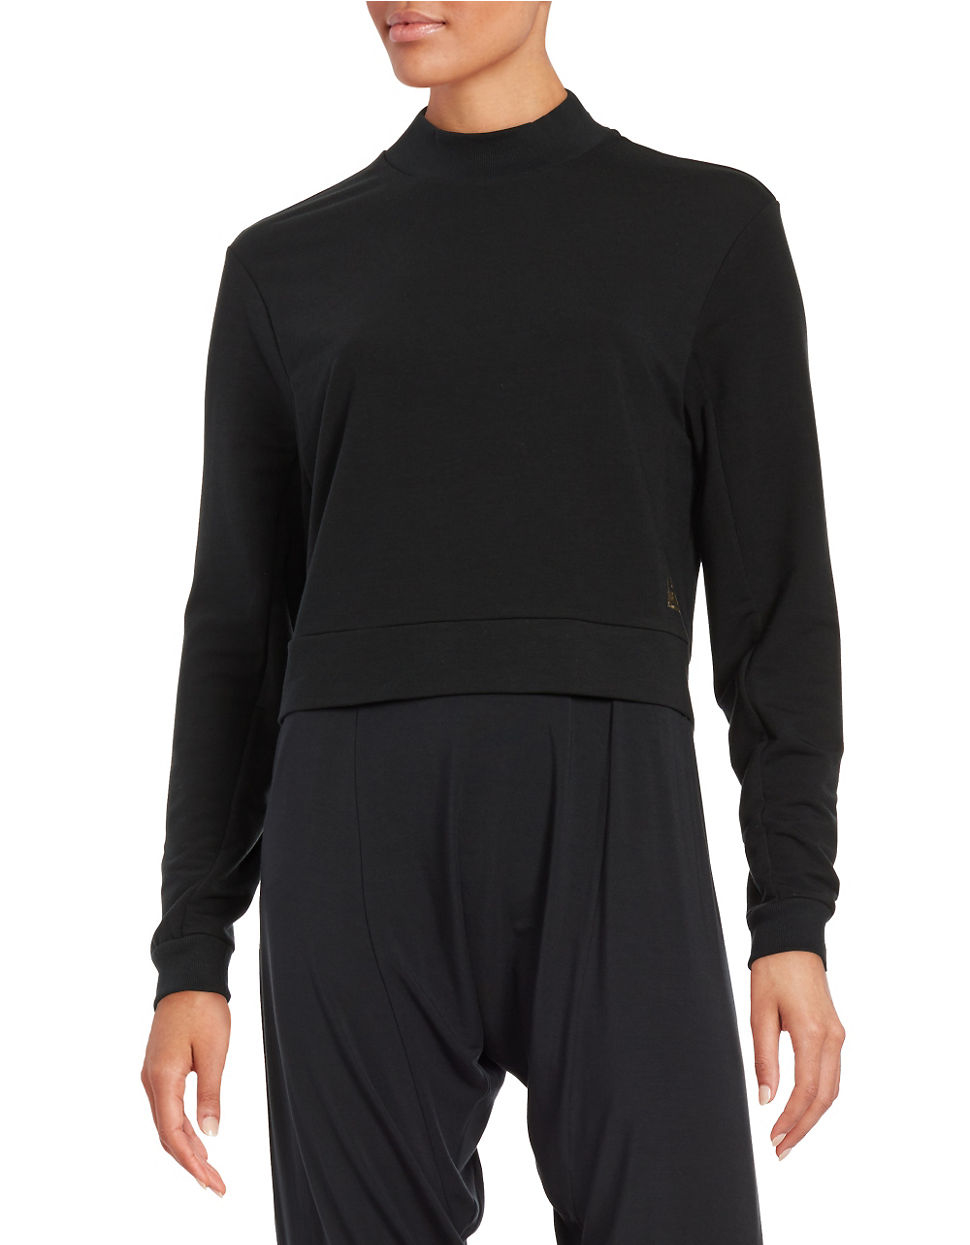 Bench Jess Glynne Cropped Active Sweater In Black For Men